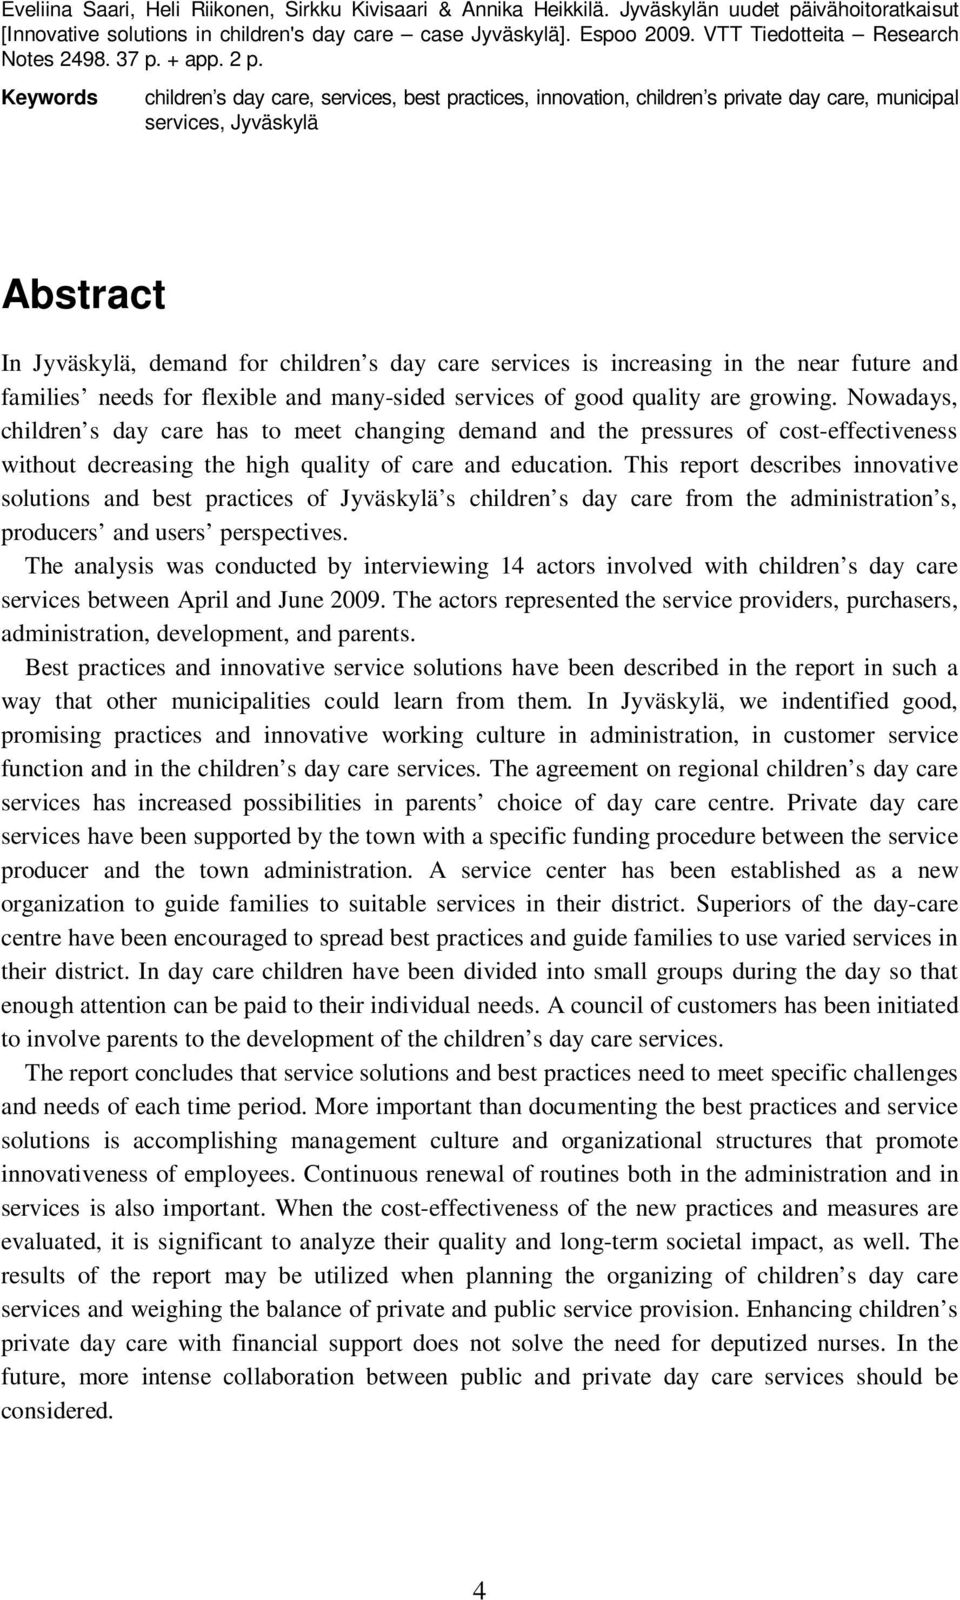 Keywords children s day care, services, best practices, innovation, children s private day care, municipal services, Jyväskylä Abstract In Jyväskylä, demand for children s day care services is